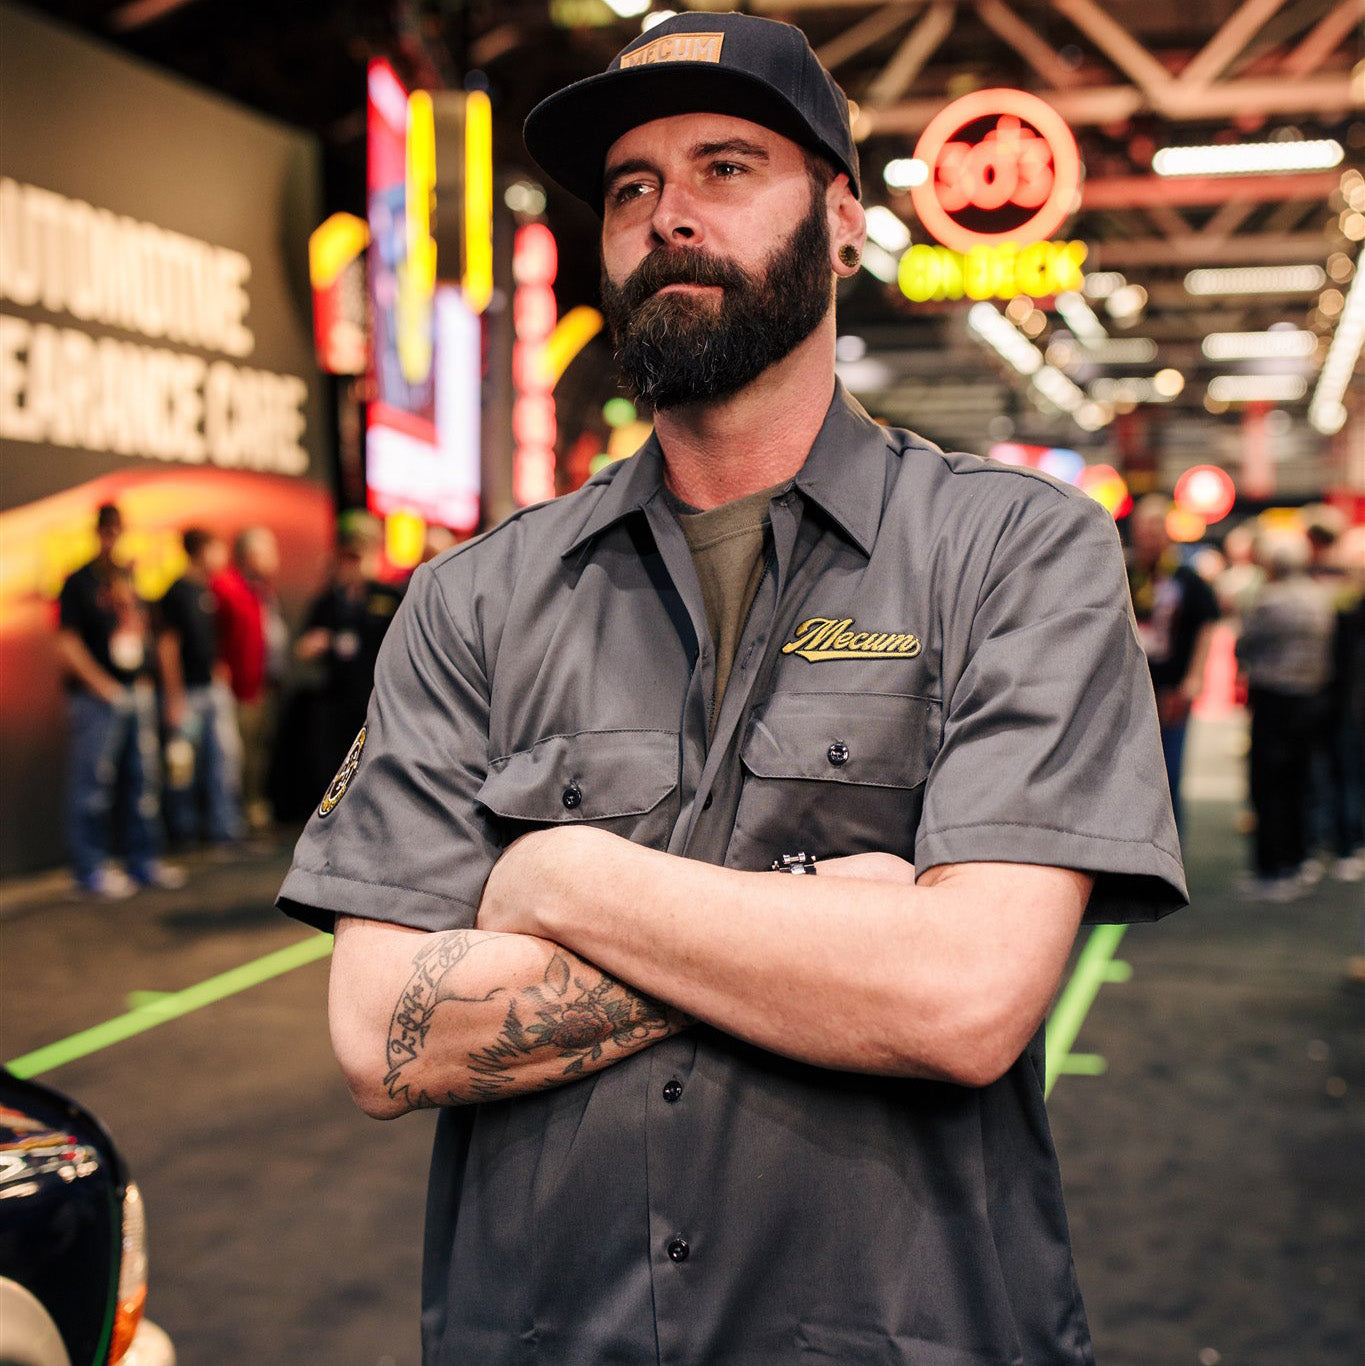 Man wearing 2020 Mecum Men's Gray Shift Work Shirt